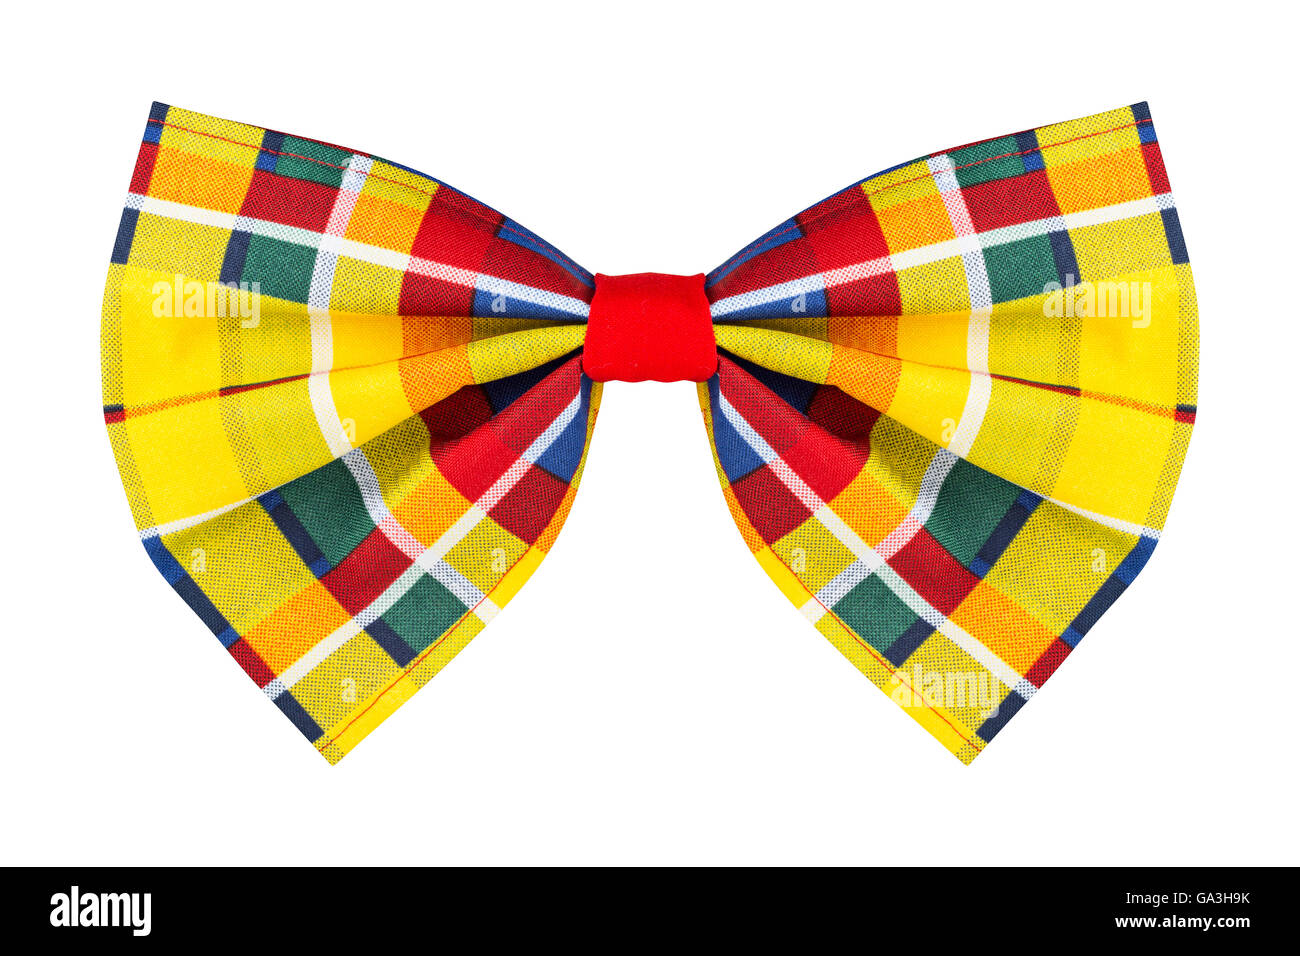 colorful checkered bow tie isolated on white background - Stock Image